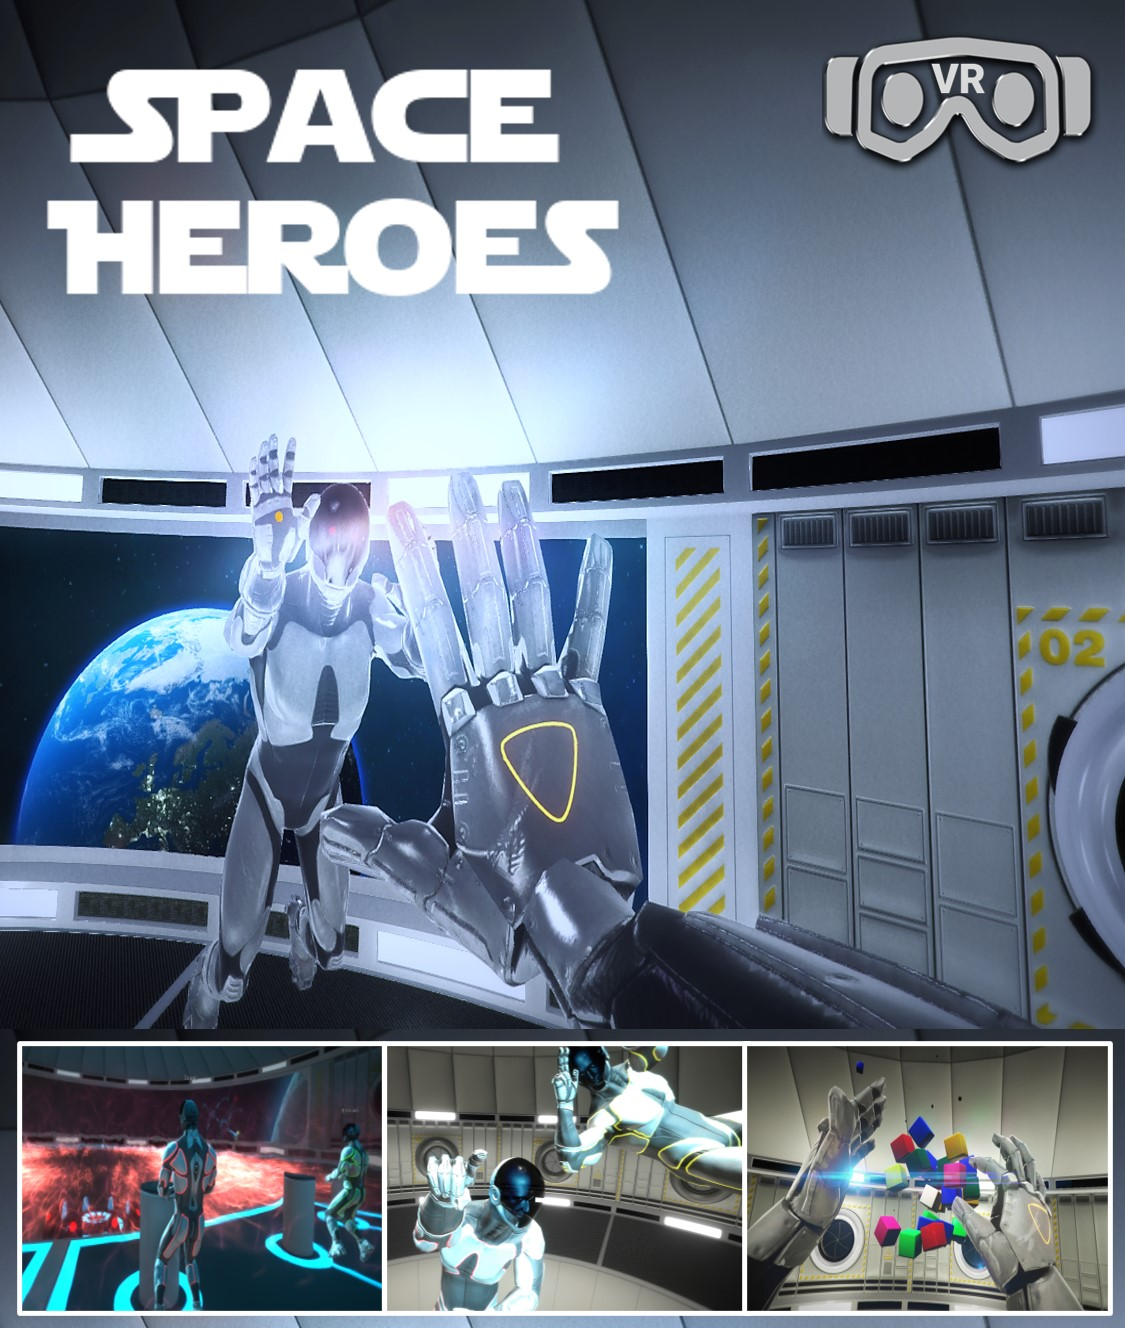 Space Heroes-Entermission Virtual Reality Escape Room-644x760-VR